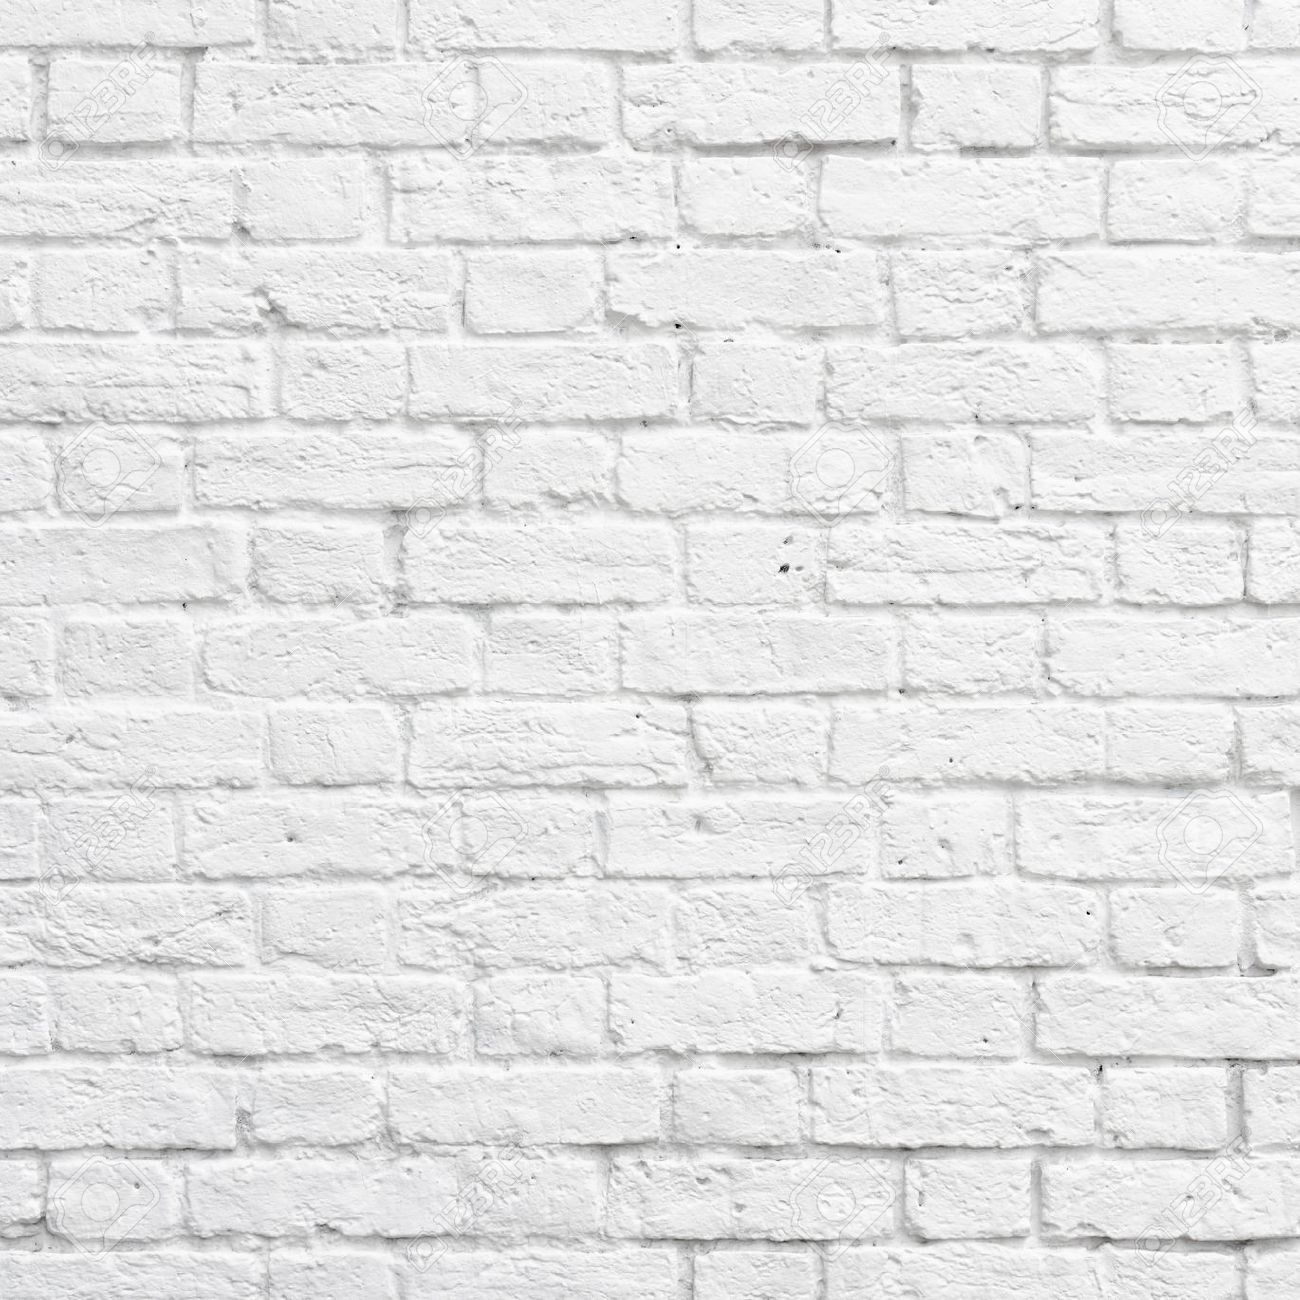 White Brick Wall Texture Or Background Stock Photo Picture And Royalty Free Image Image 19288541